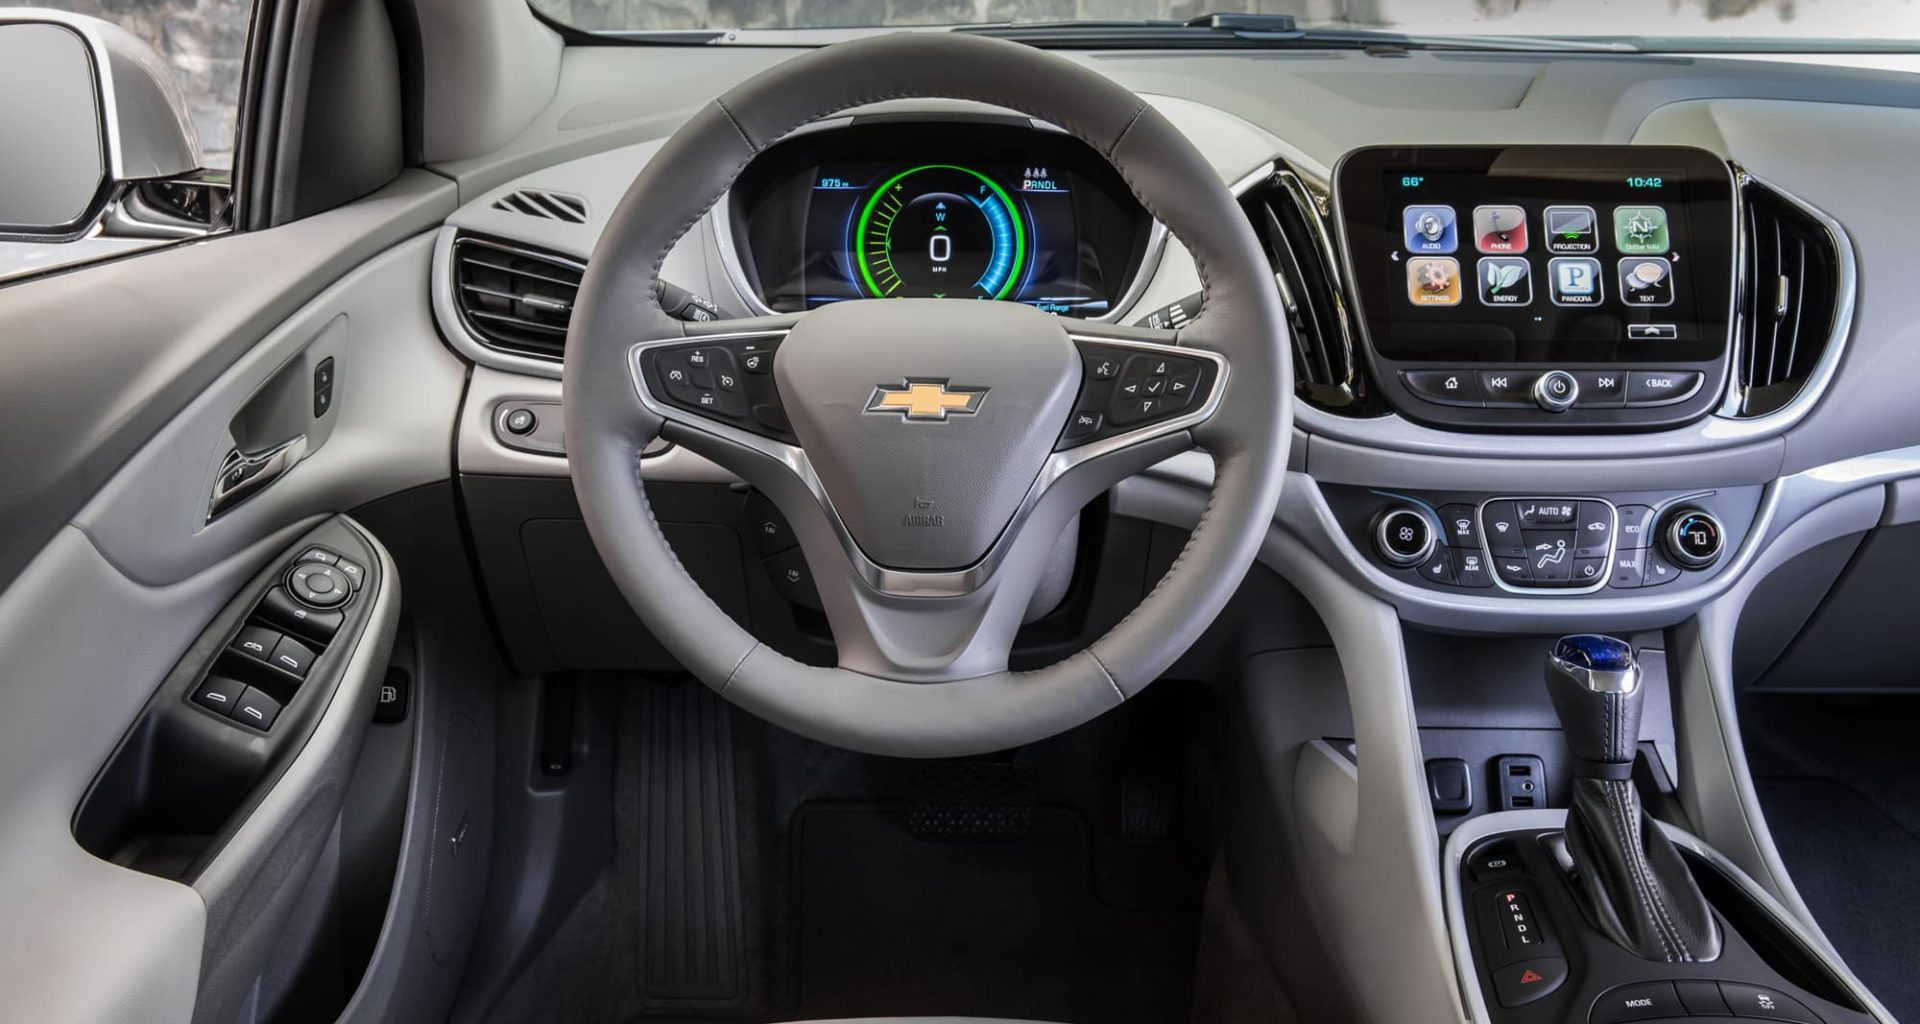 Chevy Volt One-Pedal Driving